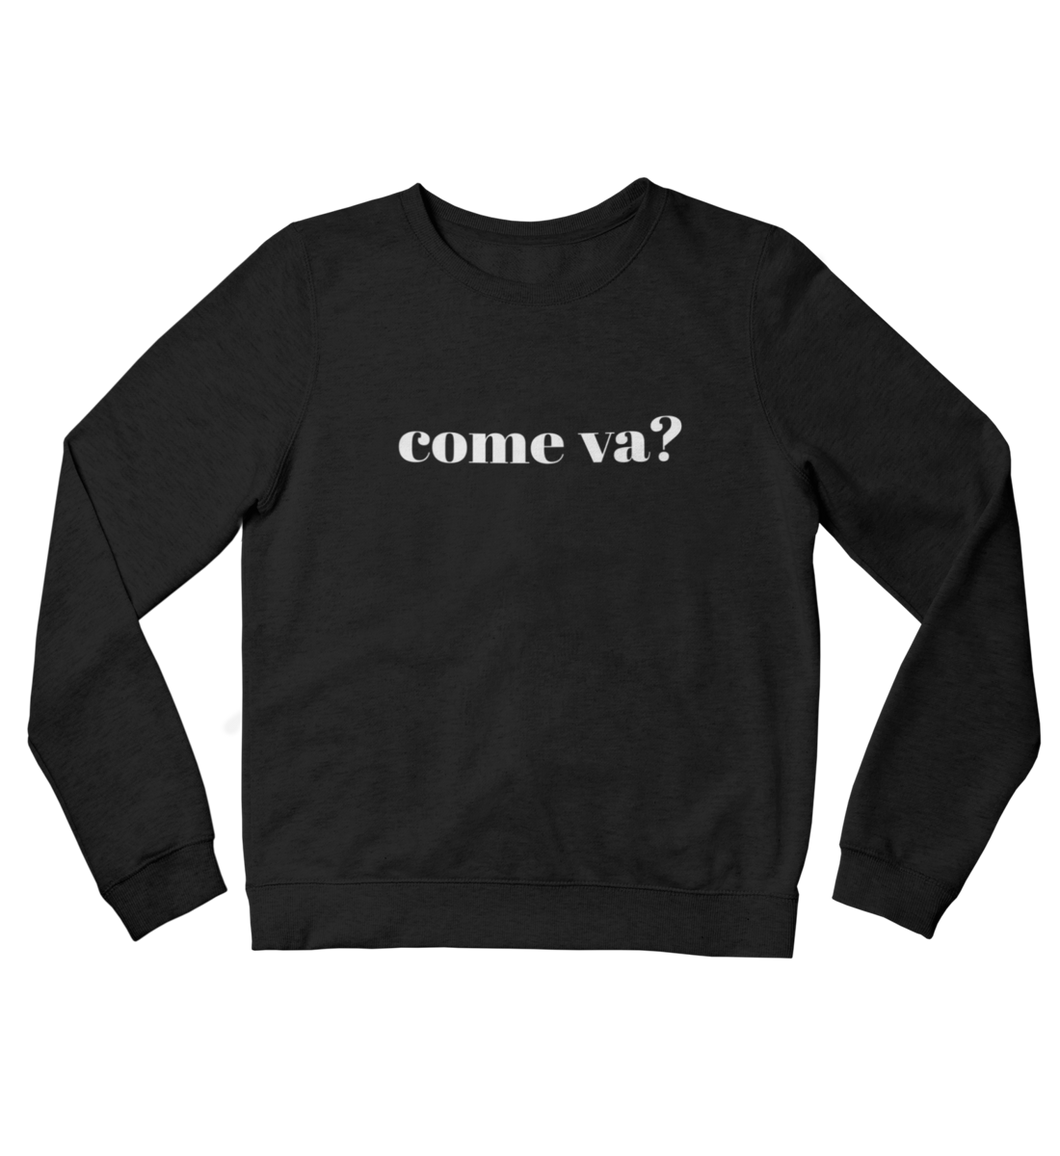 come va? - Sweatshirt Unisex